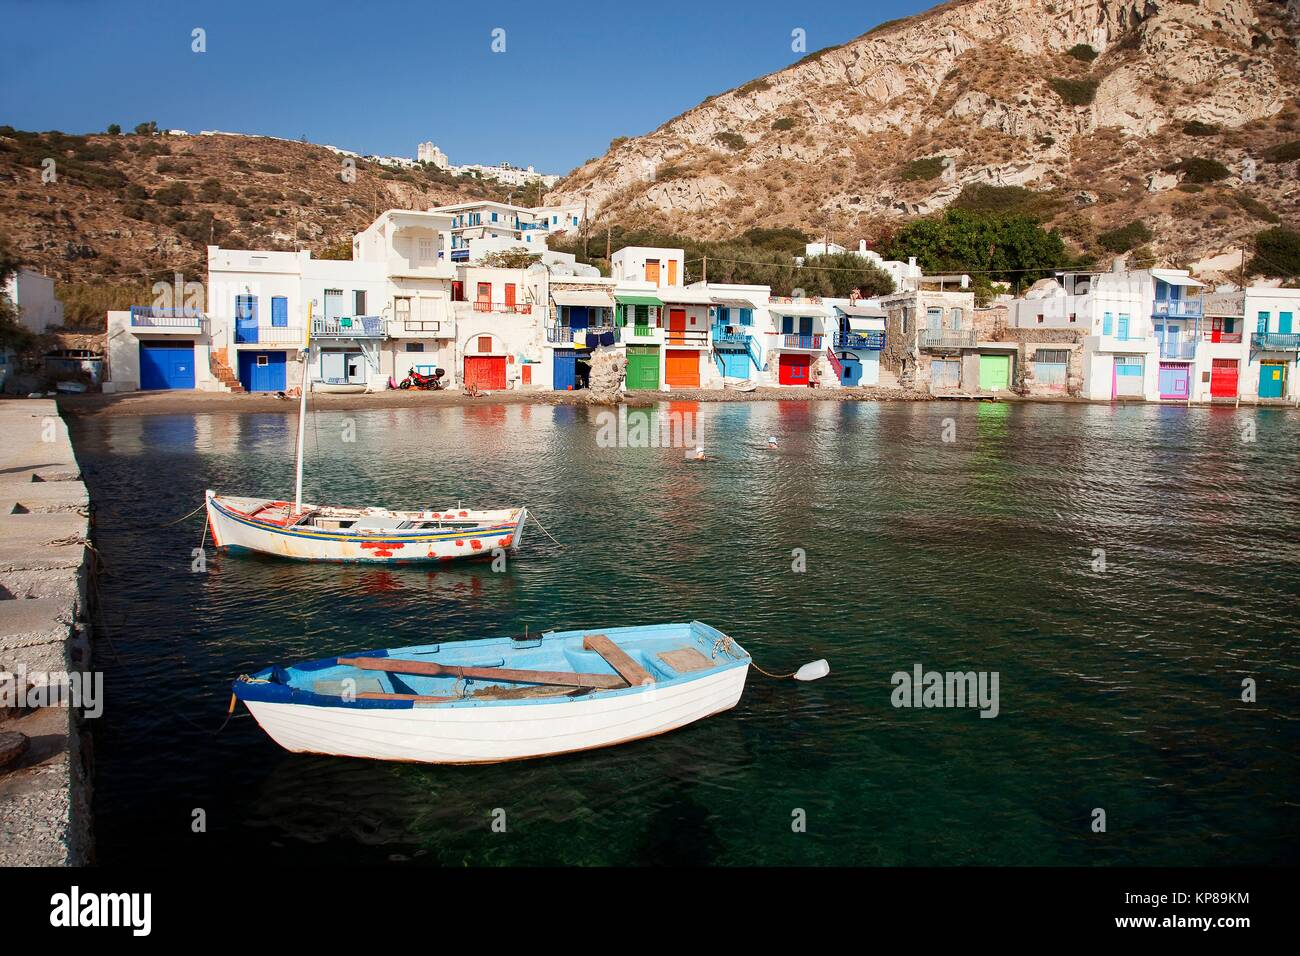 Local people swimming in the sea in front of the traditional fisherman houses with the impressive boat shelters - Stock Image